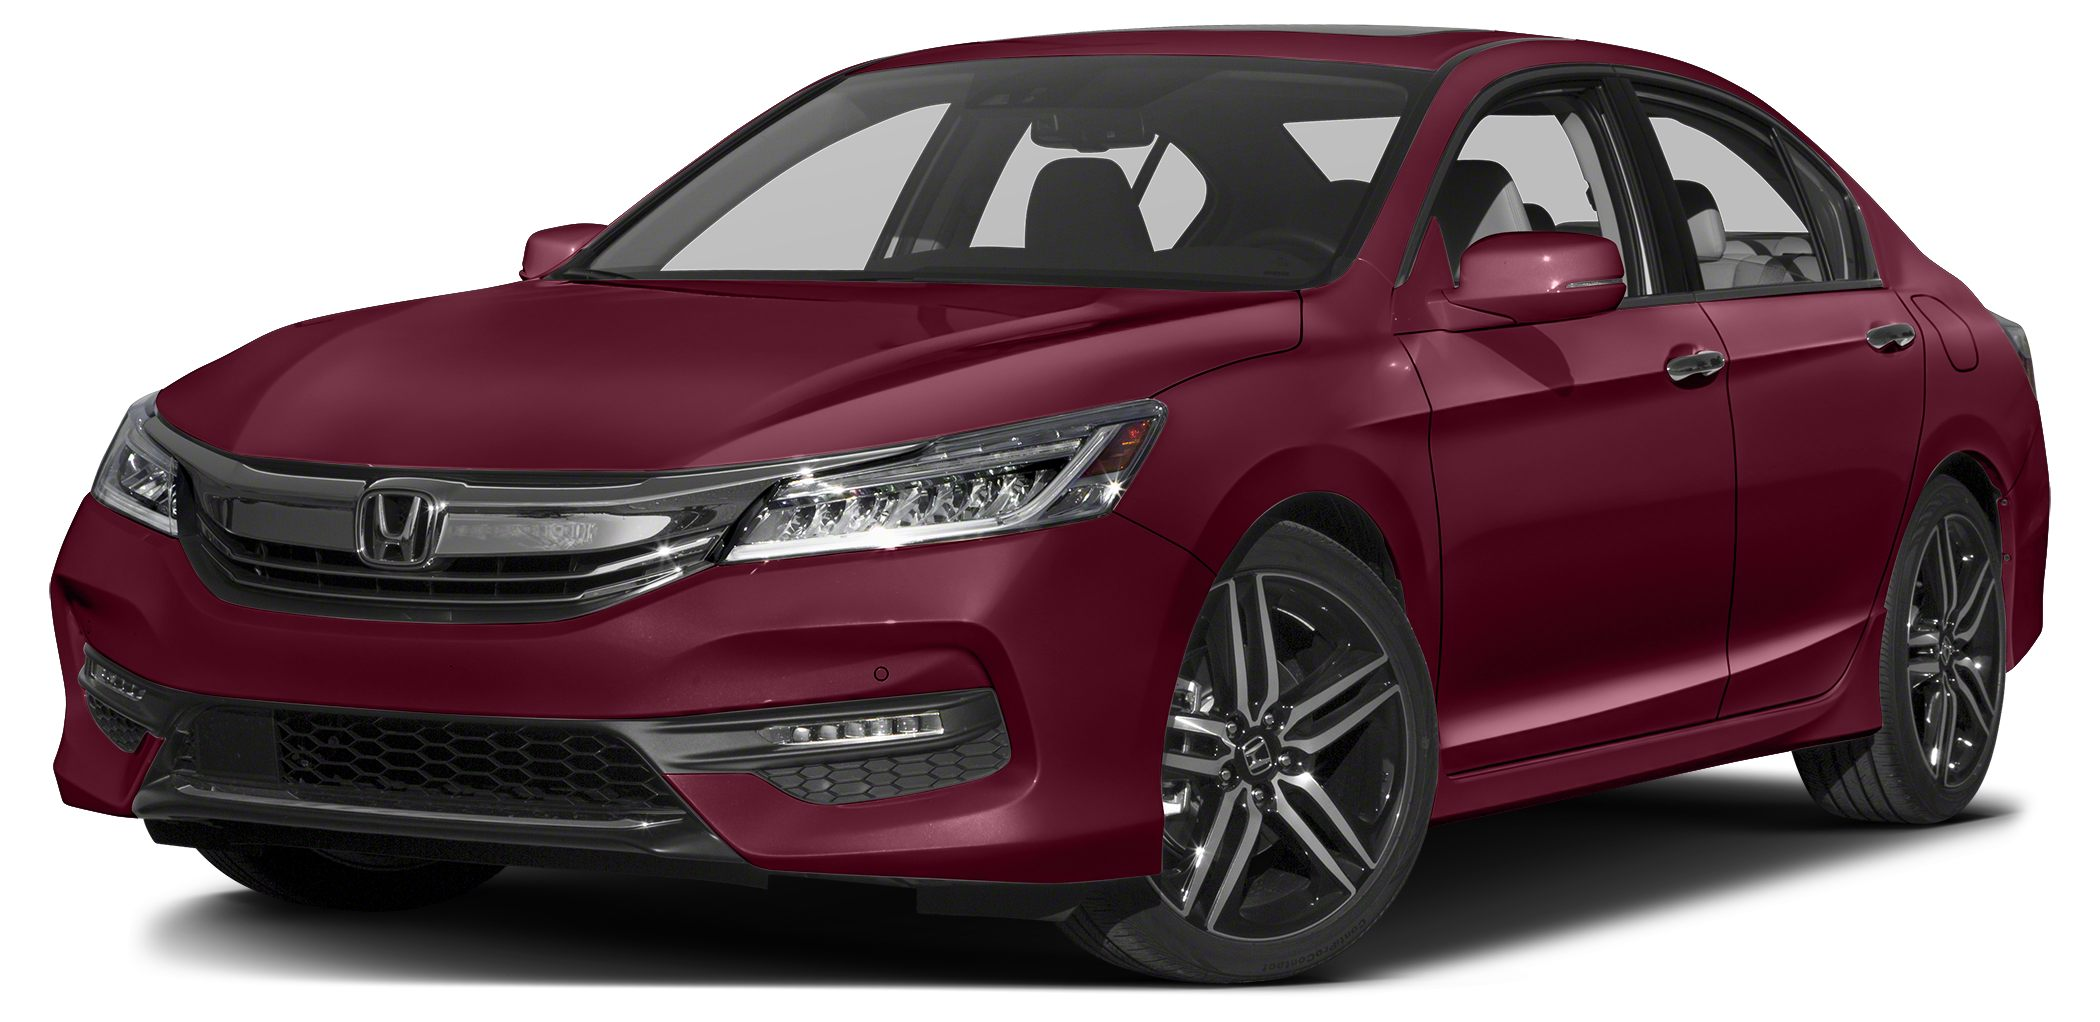 2016 Honda Accord Touring Get ready for the sun Talk about fun in the sun Buy a new Honda from D